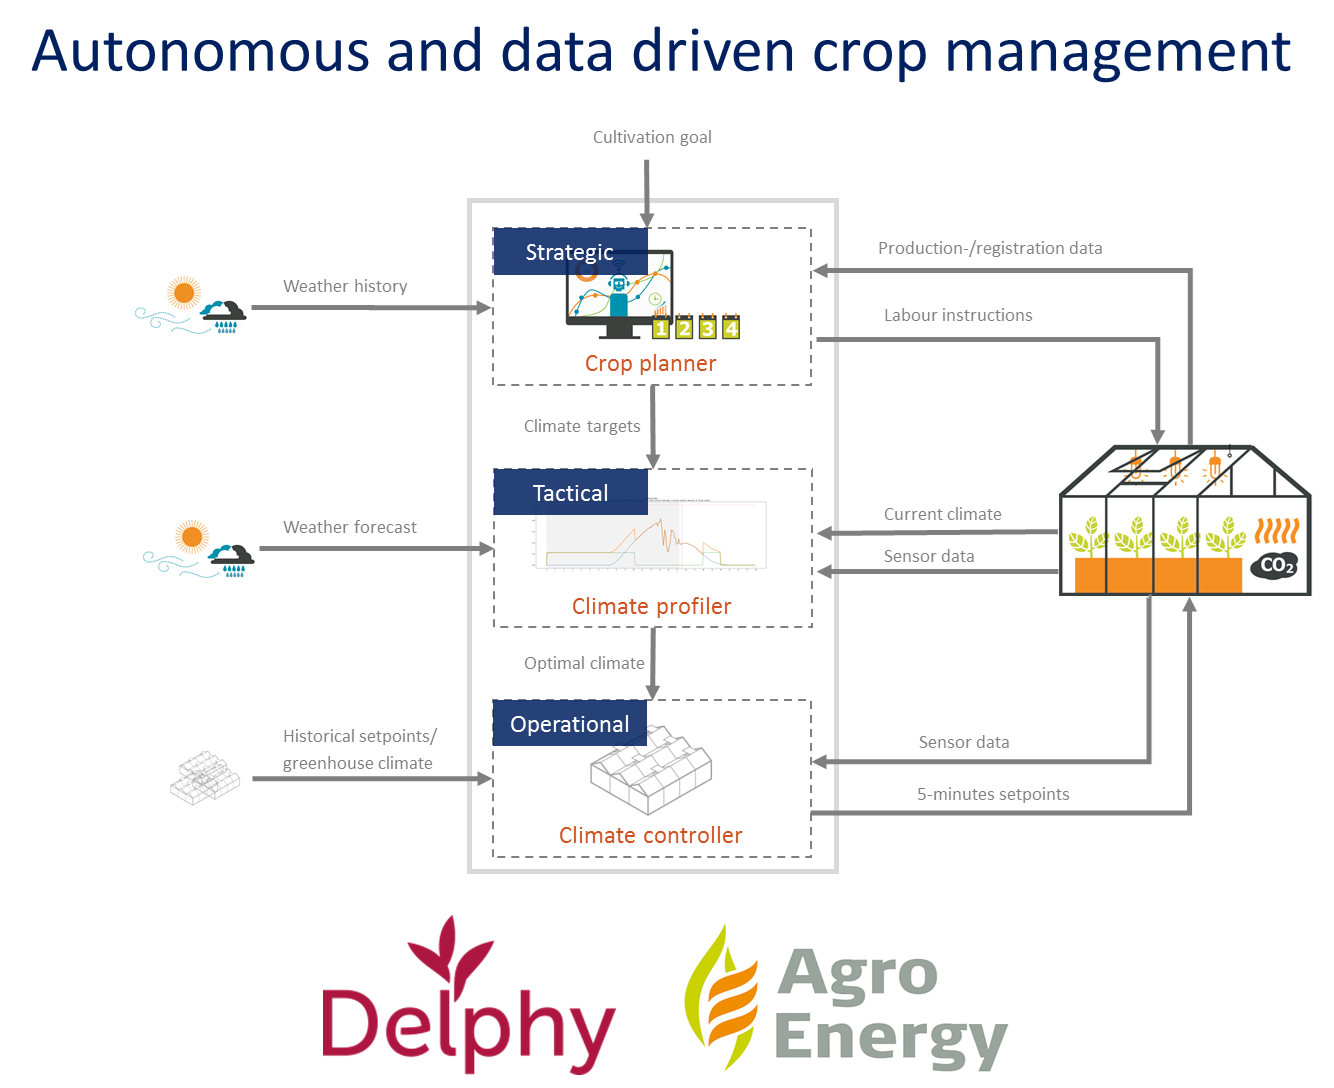 Delphy and AgroEnergy